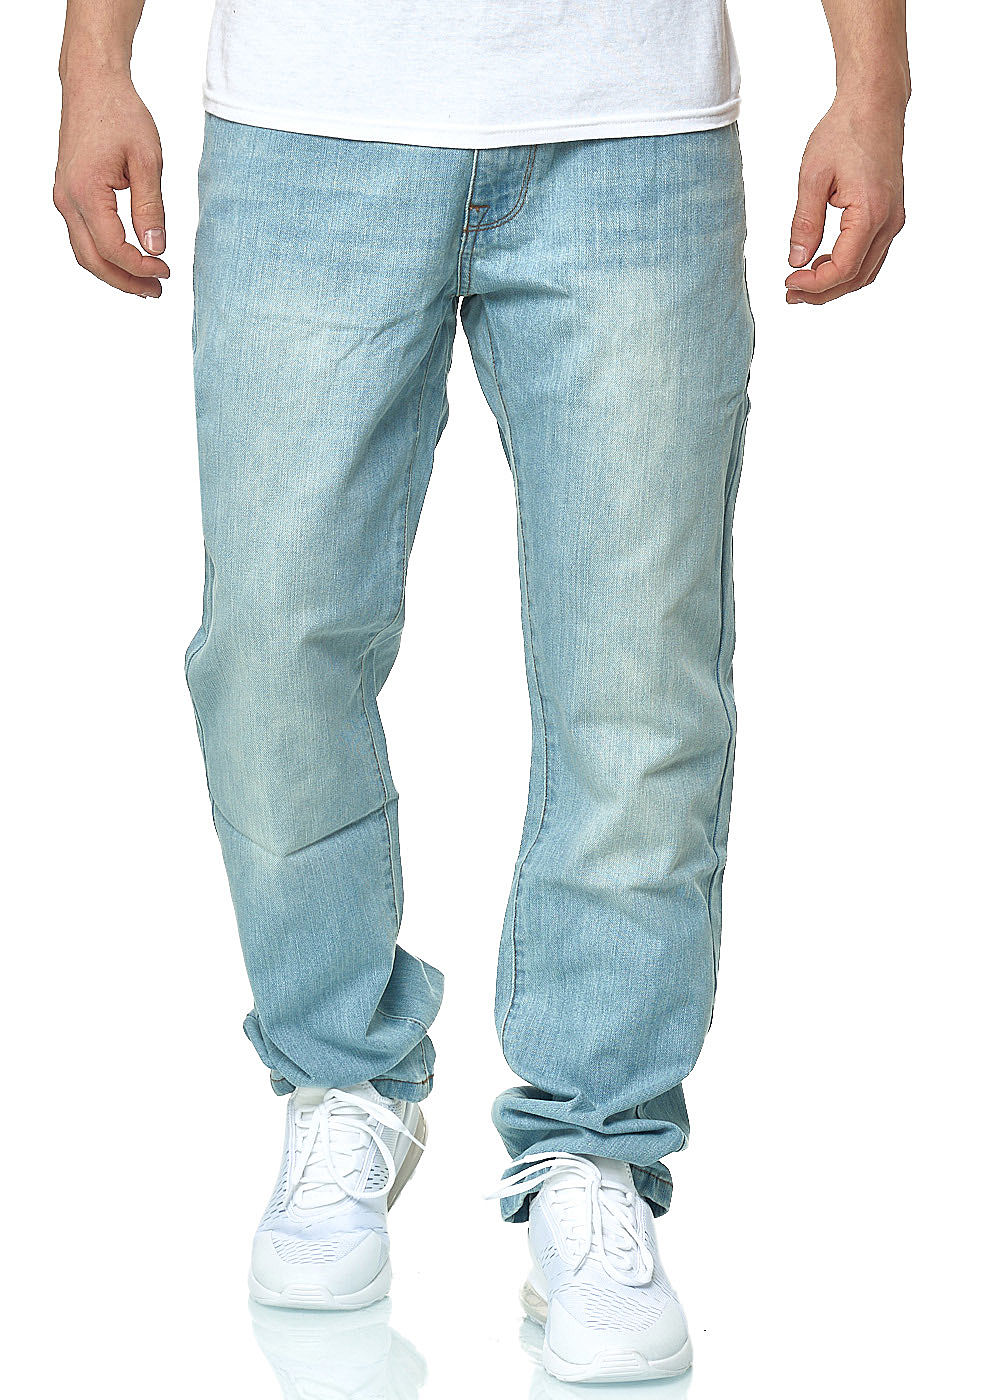 Seventyseven Lifestyle Herren Relaxed Fit Jeans Hose 5-Pockets light wash denim - Art.-Nr.: 20030943-3832-DN